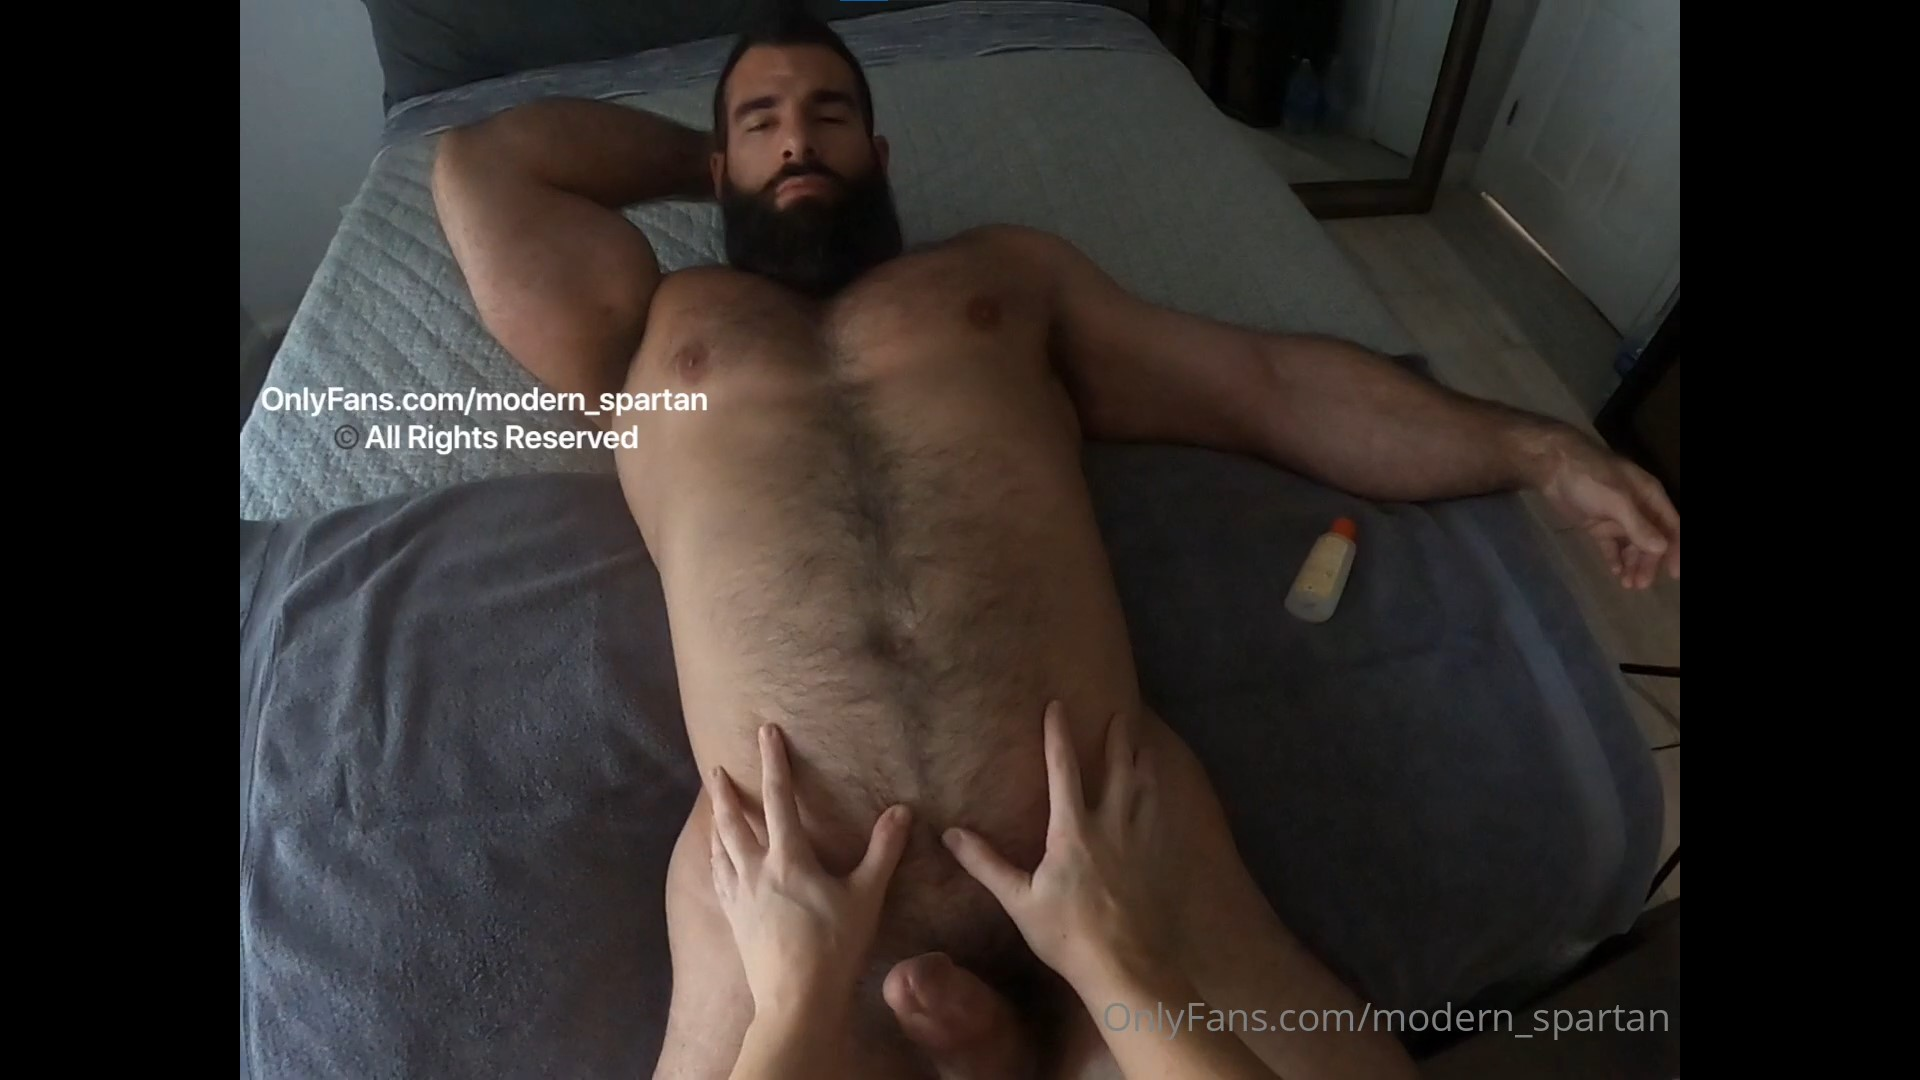 Getting a hand job and having my ass played with - Nick Pulos (modern_spartan)